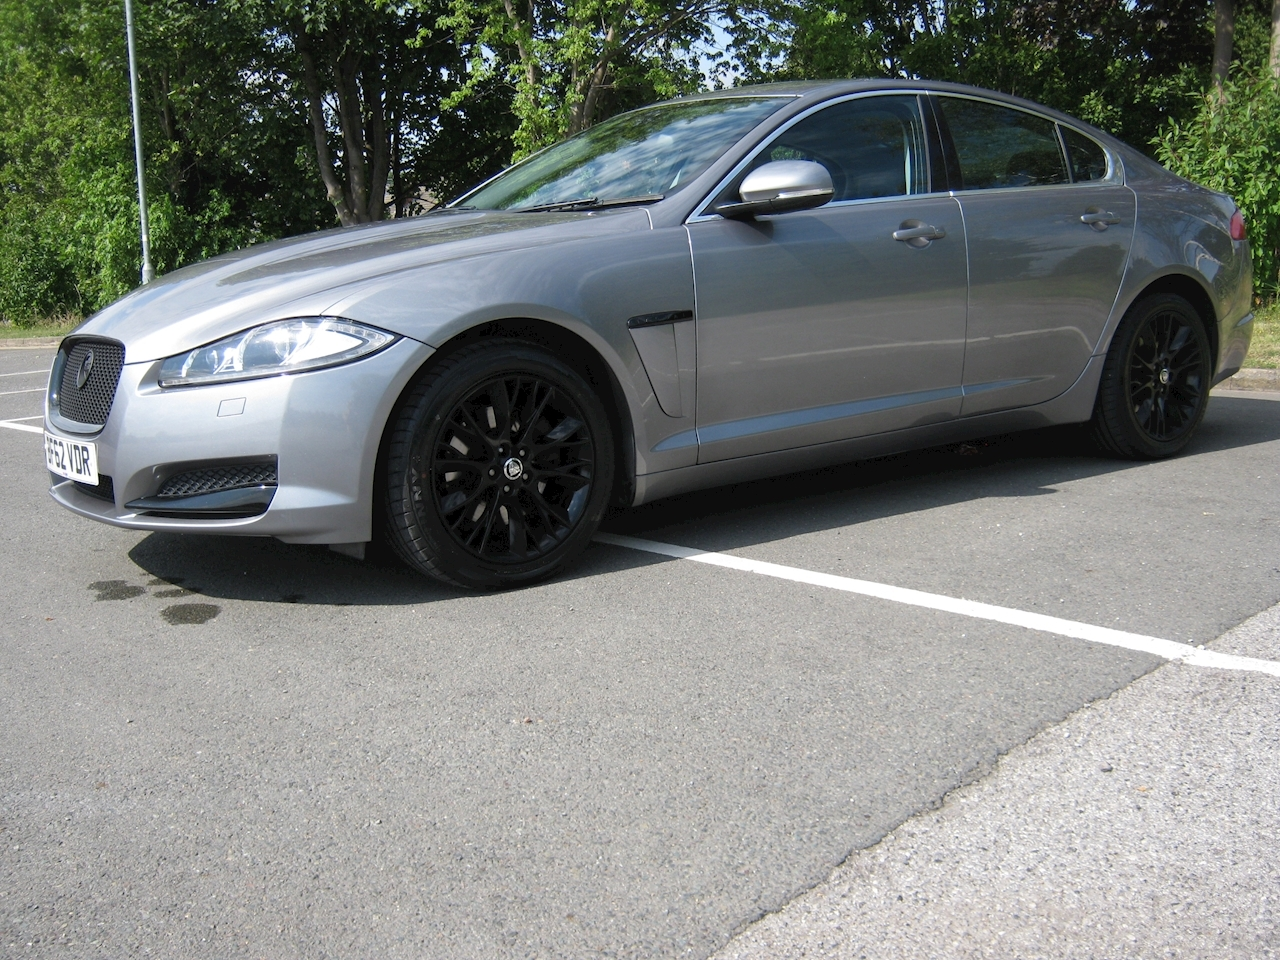 XF V6 Luxury 3.0 4dr Saloon Automatic Diesel